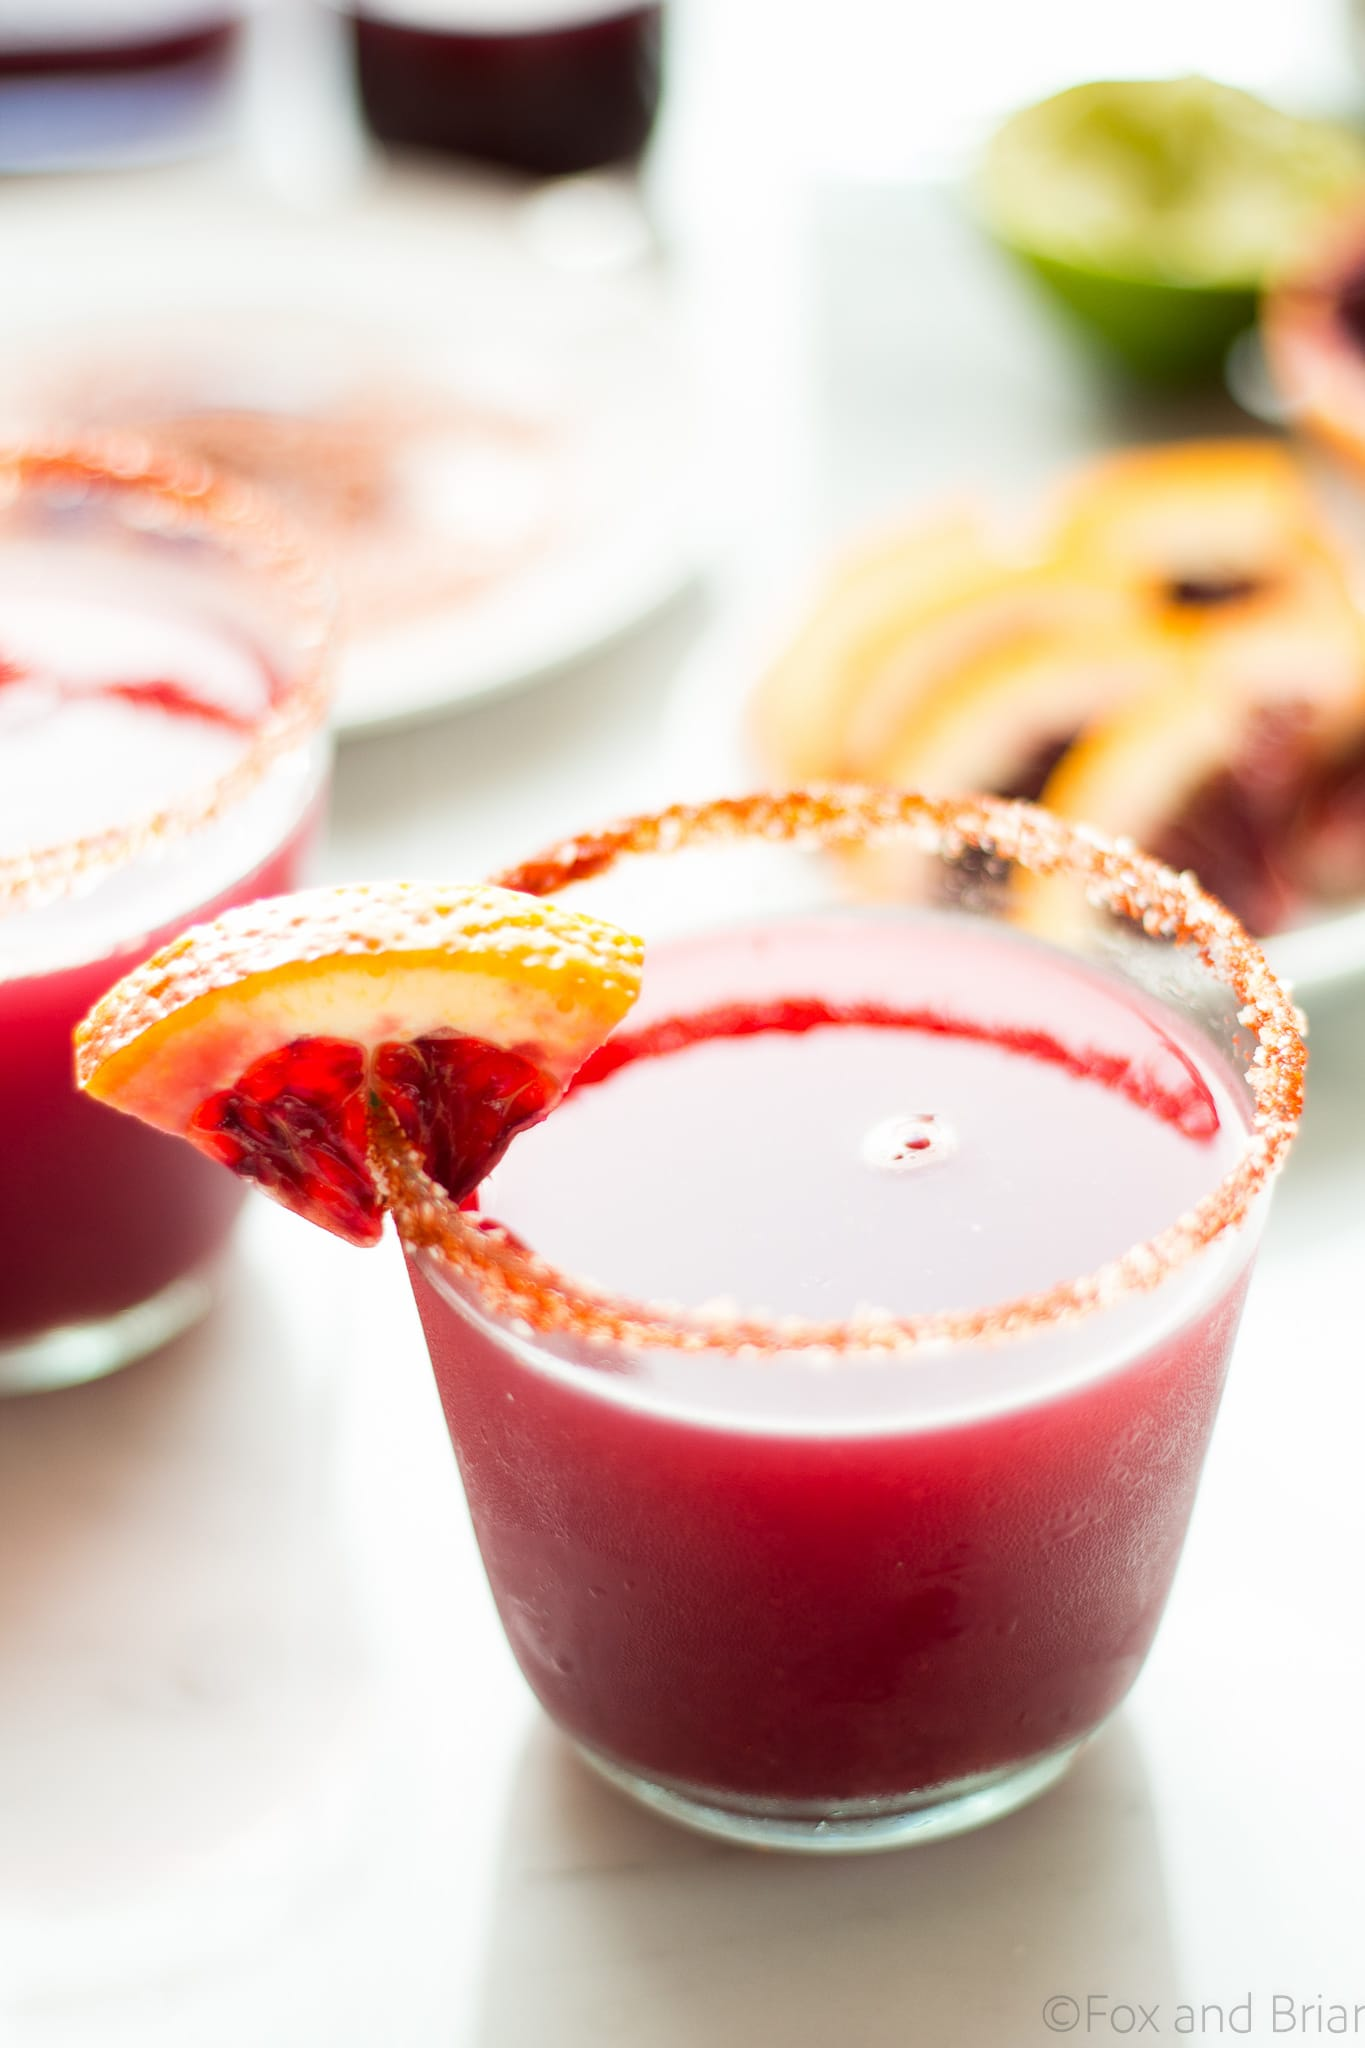 This Fresh Blood Orange Margarita has an optional smoky salted rim. The fresh citrus flavors of the blood orange make this a sweet and tart cocktail, and the smoked paprika salted rim gives it a little something extra.